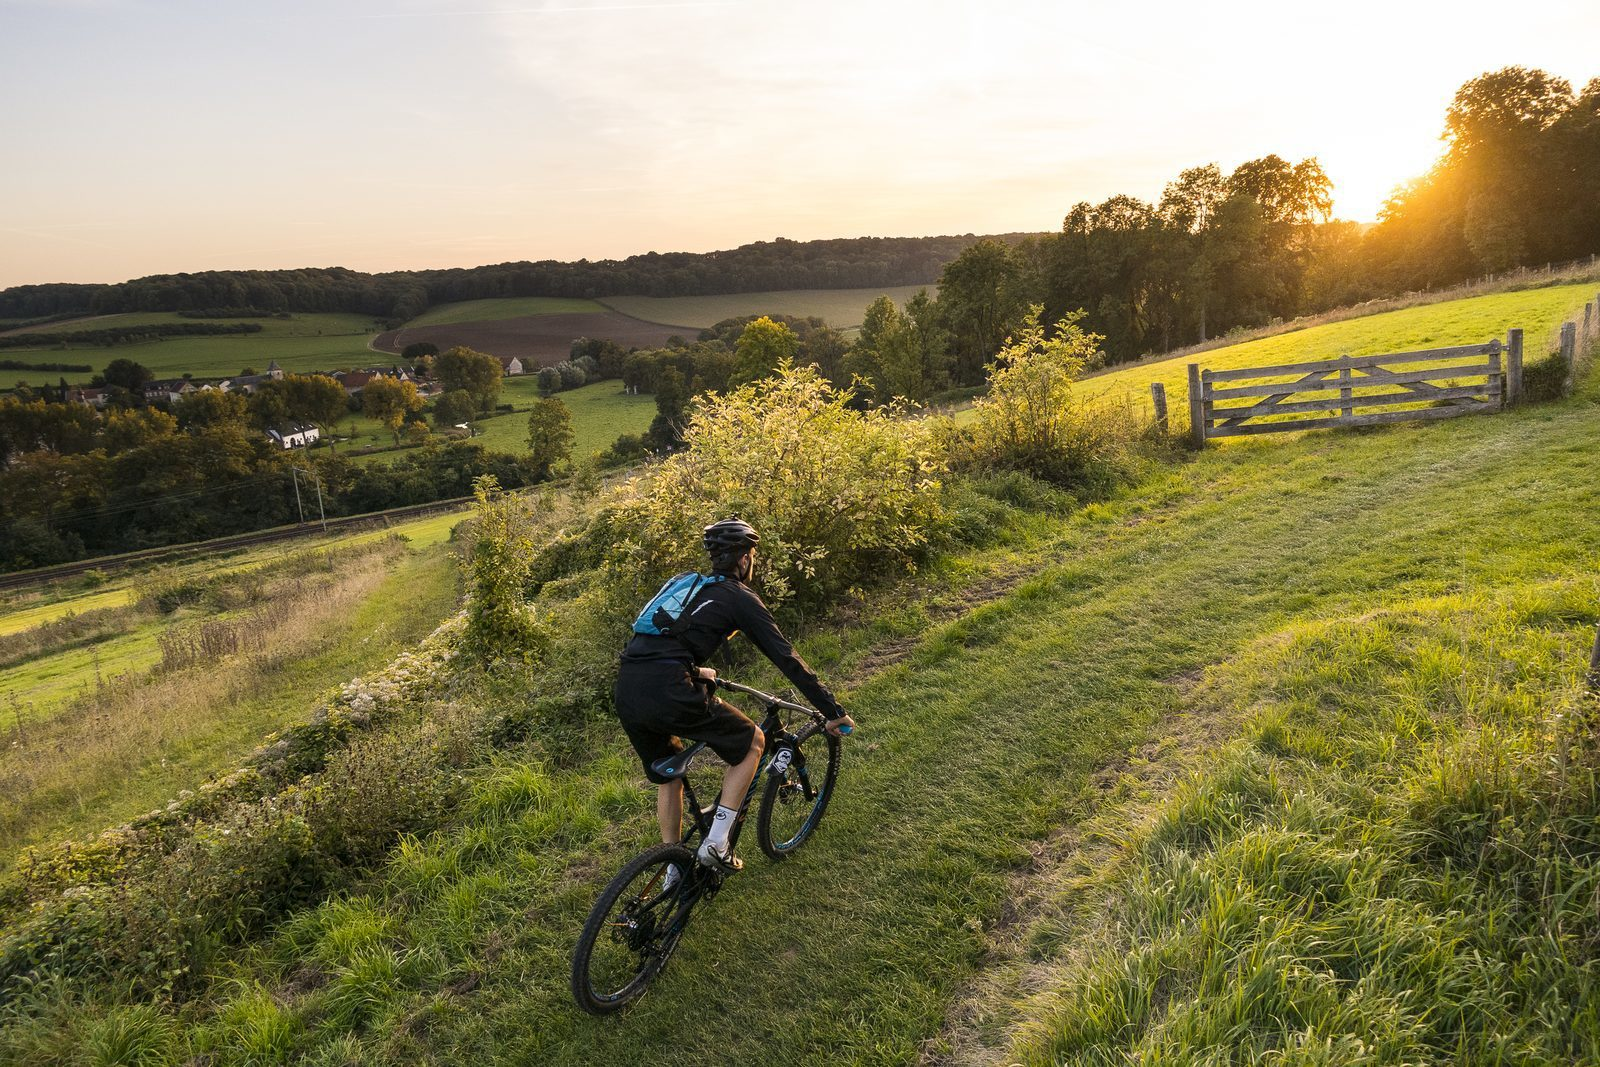 Cycling in the hilly landscape